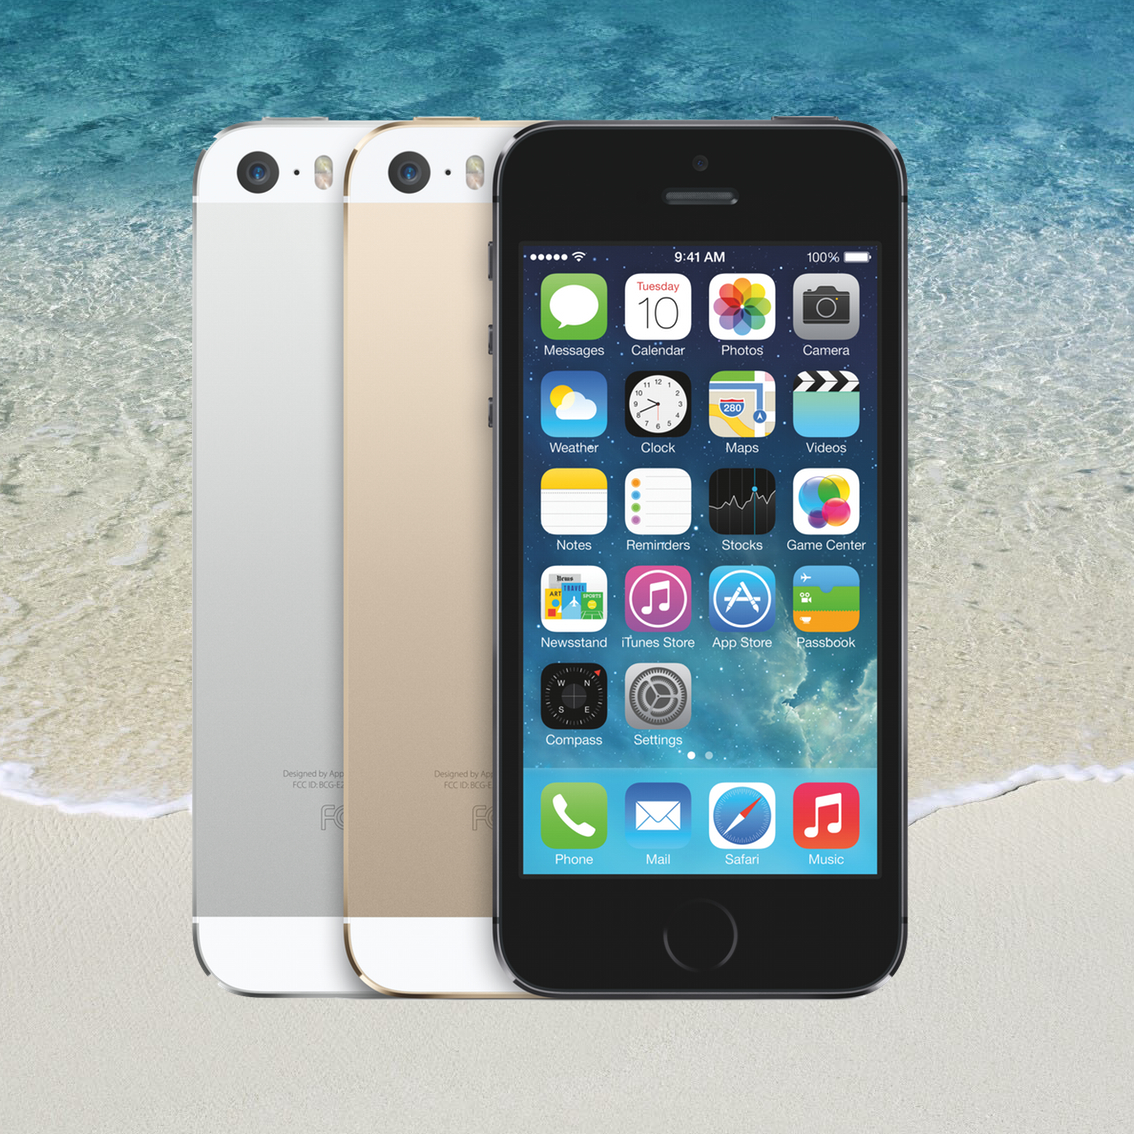 iPhone at the Beach